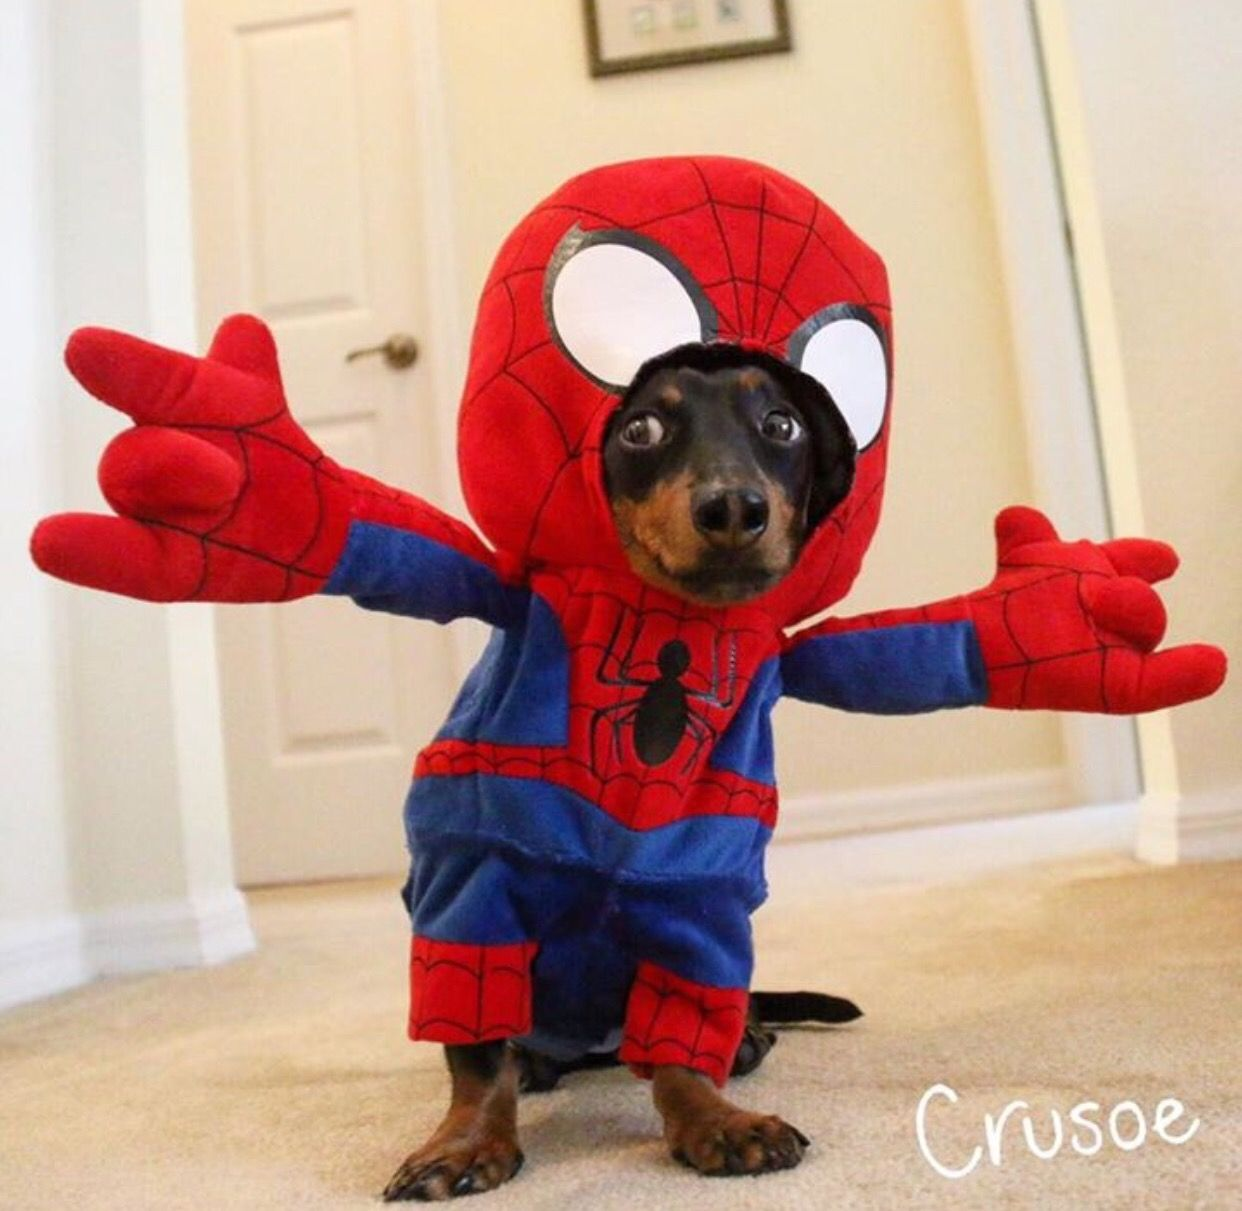 Dog Wearing Spider Man Costume Pet Costumes Crusoe The